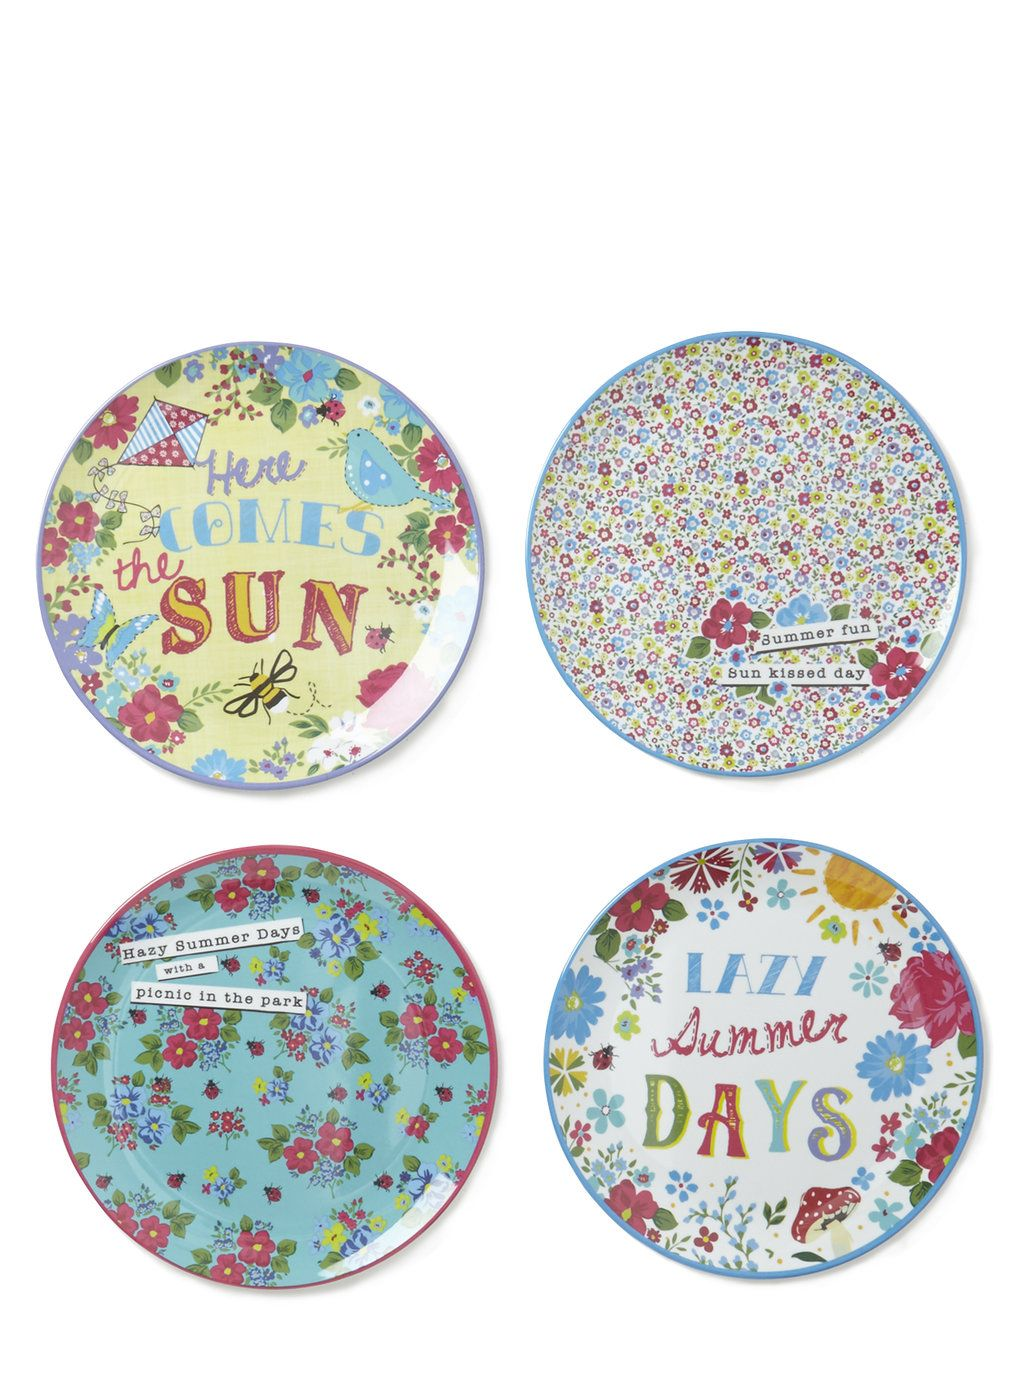 Set of 4 Vintage Text Round Side Picnic Plates - BHS  sc 1 st  Pinterest & Set of 4 Vintage Text Round Side Picnic Plates - BHS | Kitchens ...